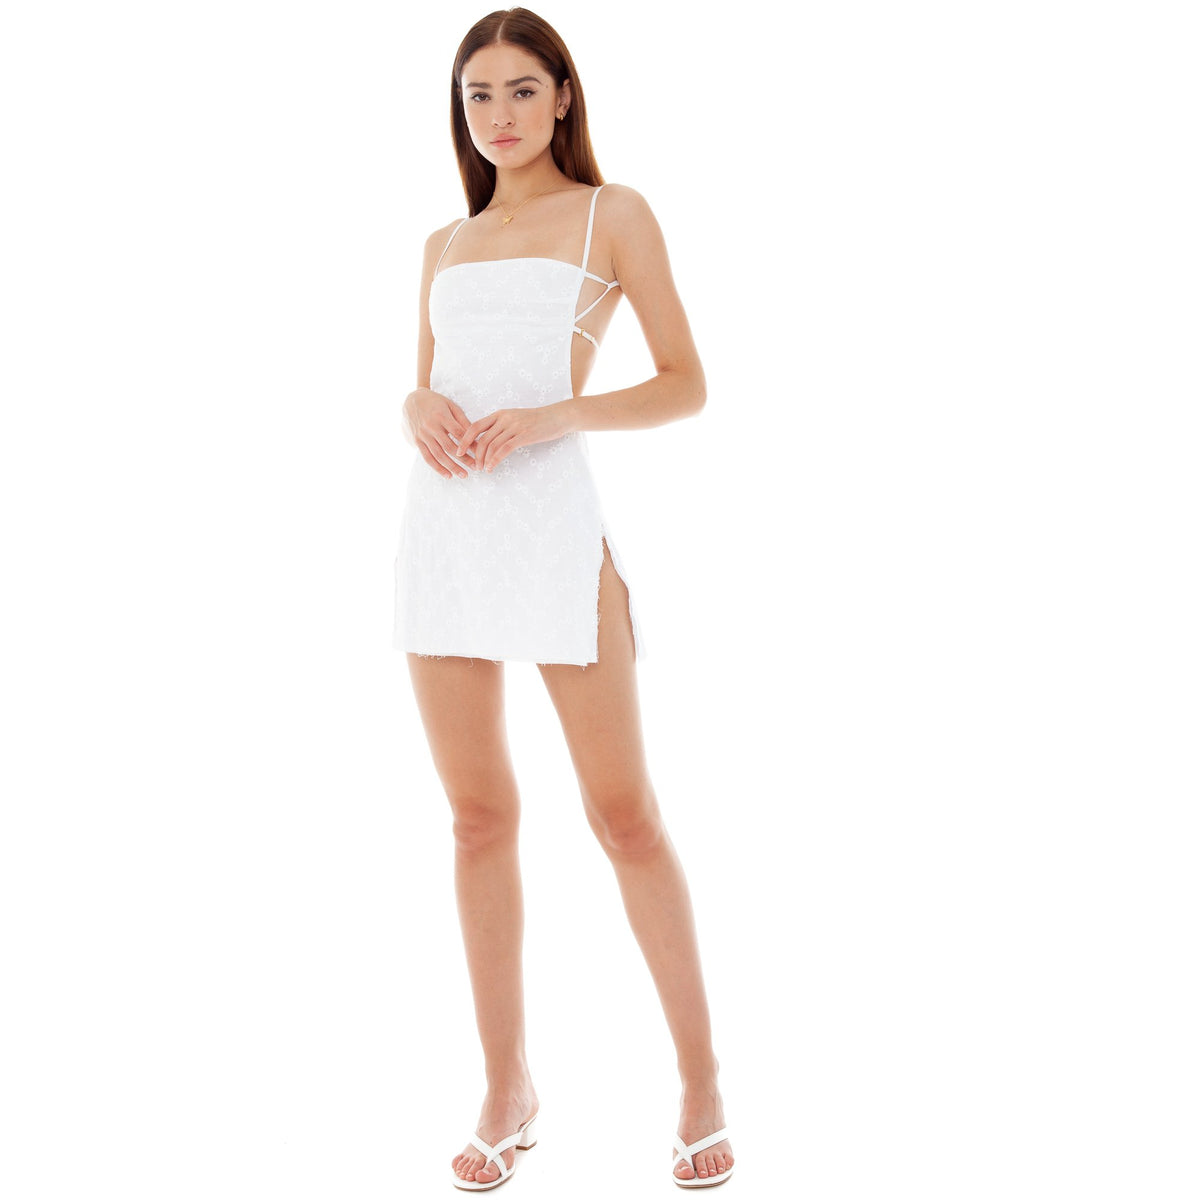 Are You Am I - Missi Eyelet Dress **white